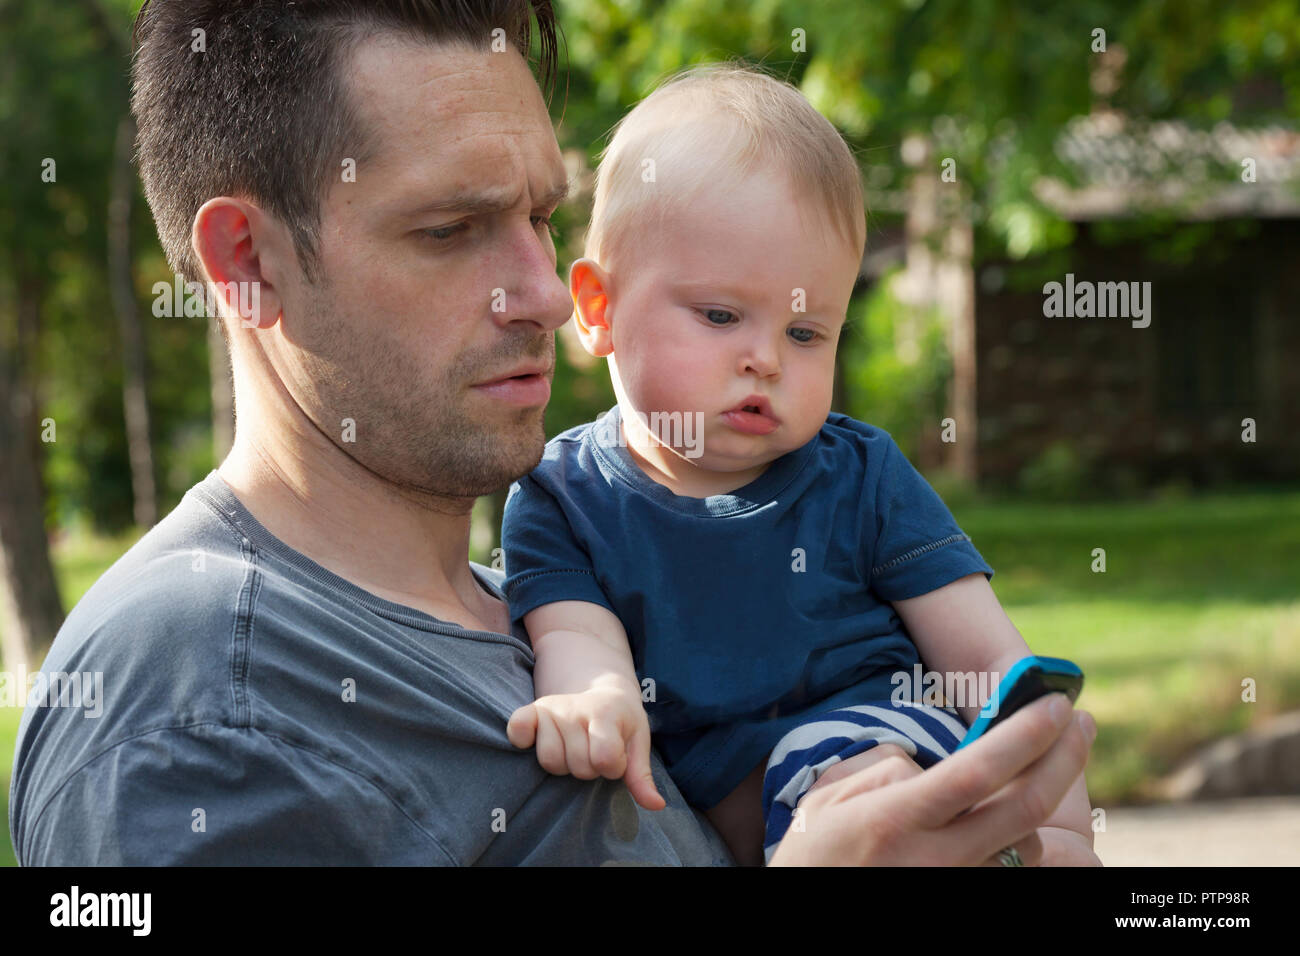 Father and son looking at a mobile phone having fun - single parent and 13 month old baby enjoying outdoors - Stock Image